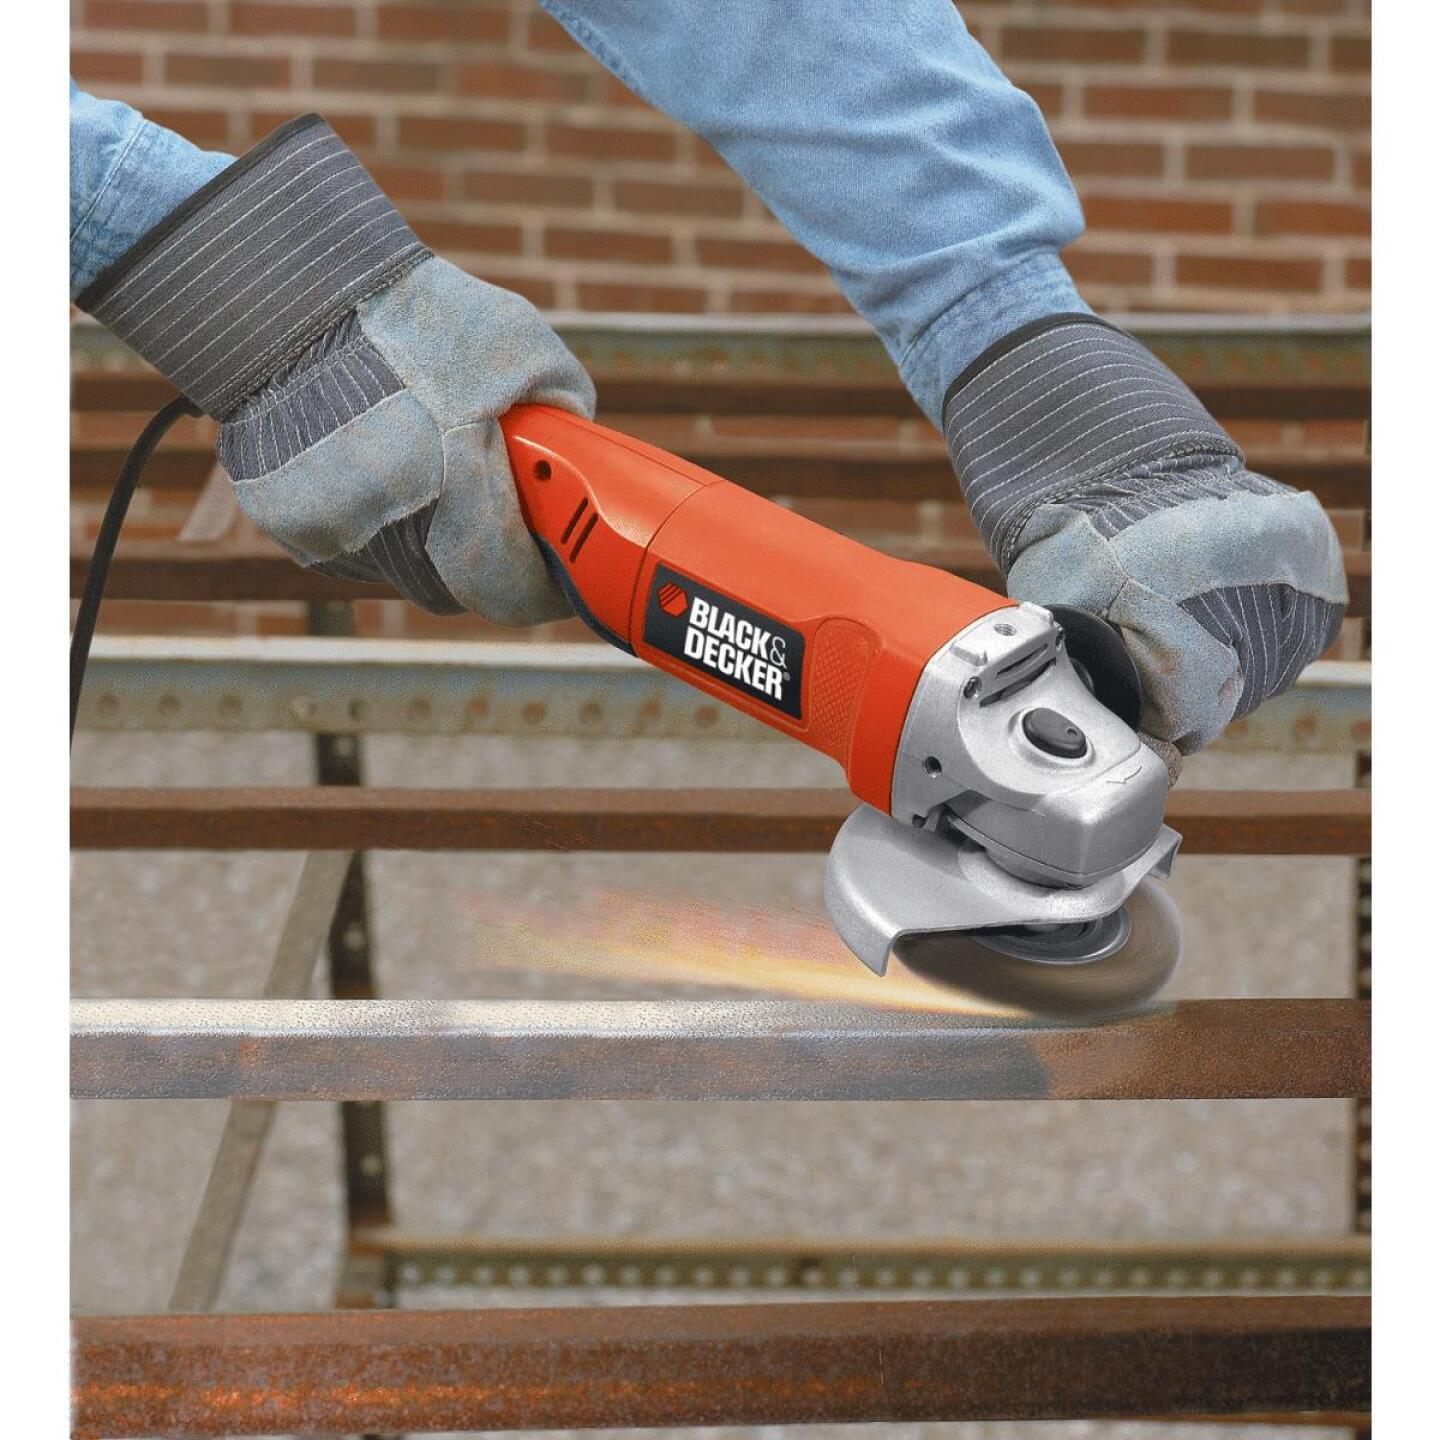 Black & Decker 4-1/2 In. 8.5-Amp Angle Grinder Image 2